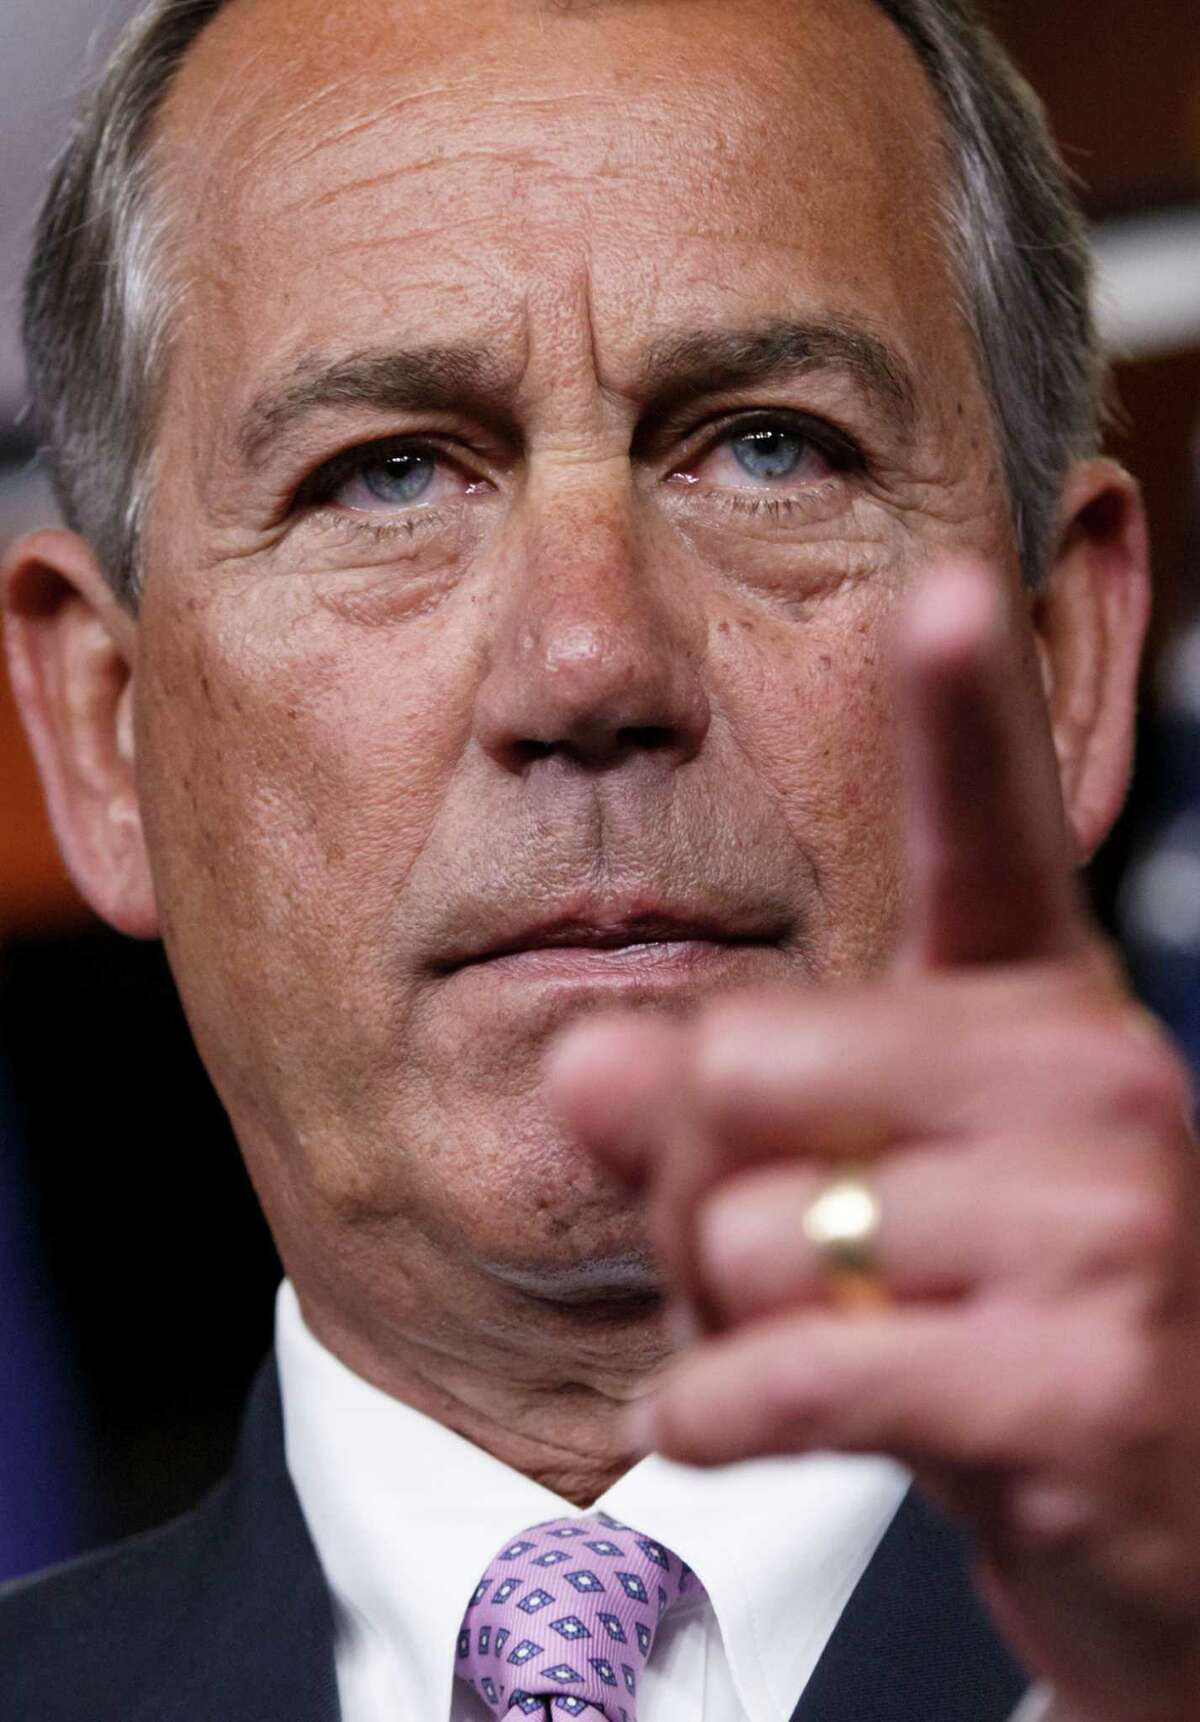 House Speaker John Boehner of Ohio and his fellow Republicans led an effort that slams president Obama's executive order on deportation of illegal immigrants.